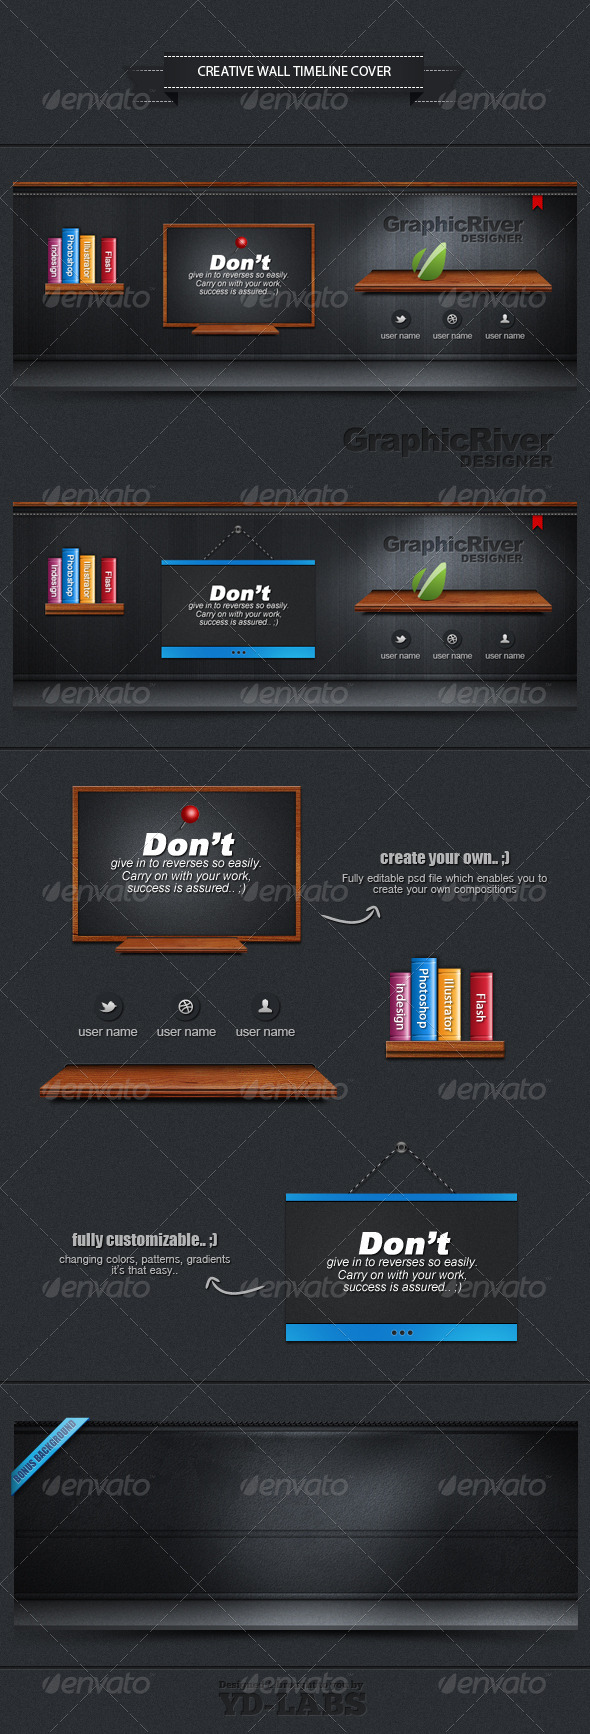 GraphicRiver Creative Wall Timeline Cover 2012256